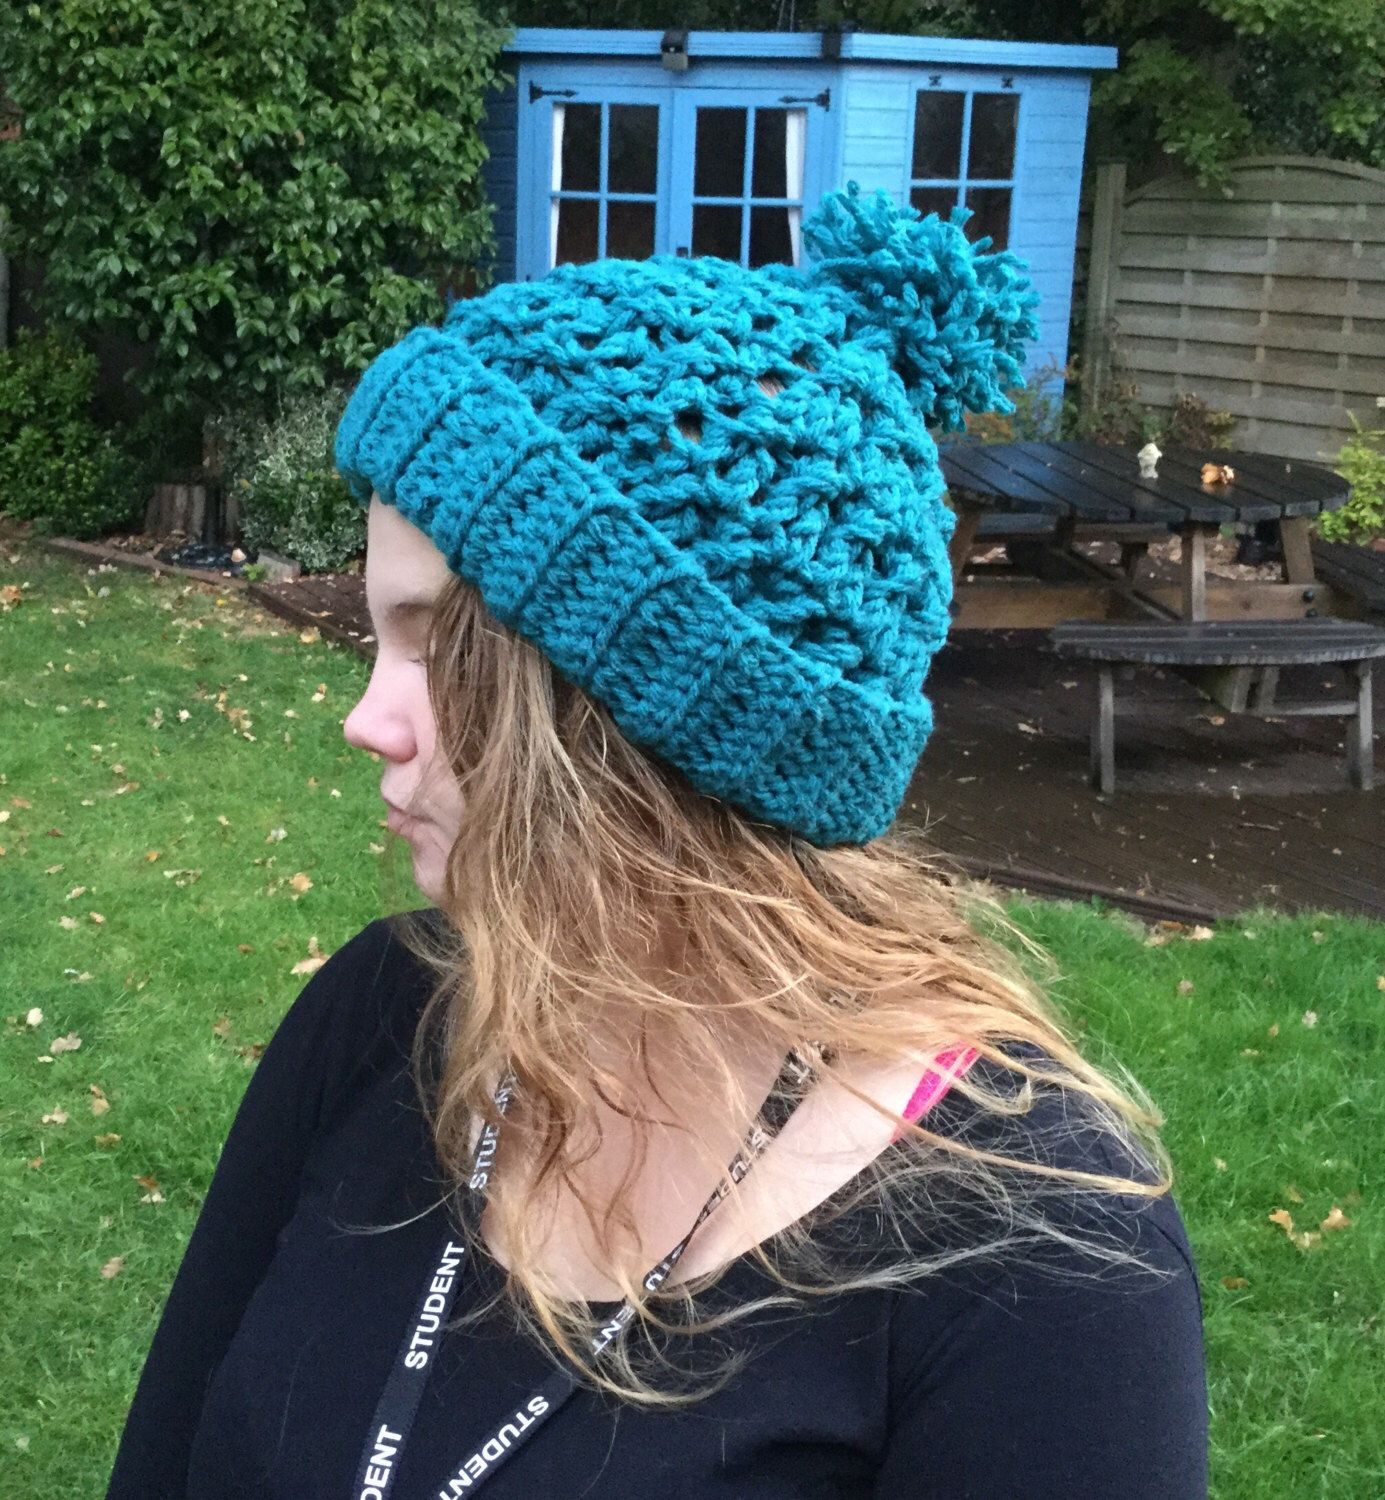 Available to buy from my Etsy shop https://www.etsy.com/uk/listing/485459235/warm-and-snuggly-chunky-weight-hand